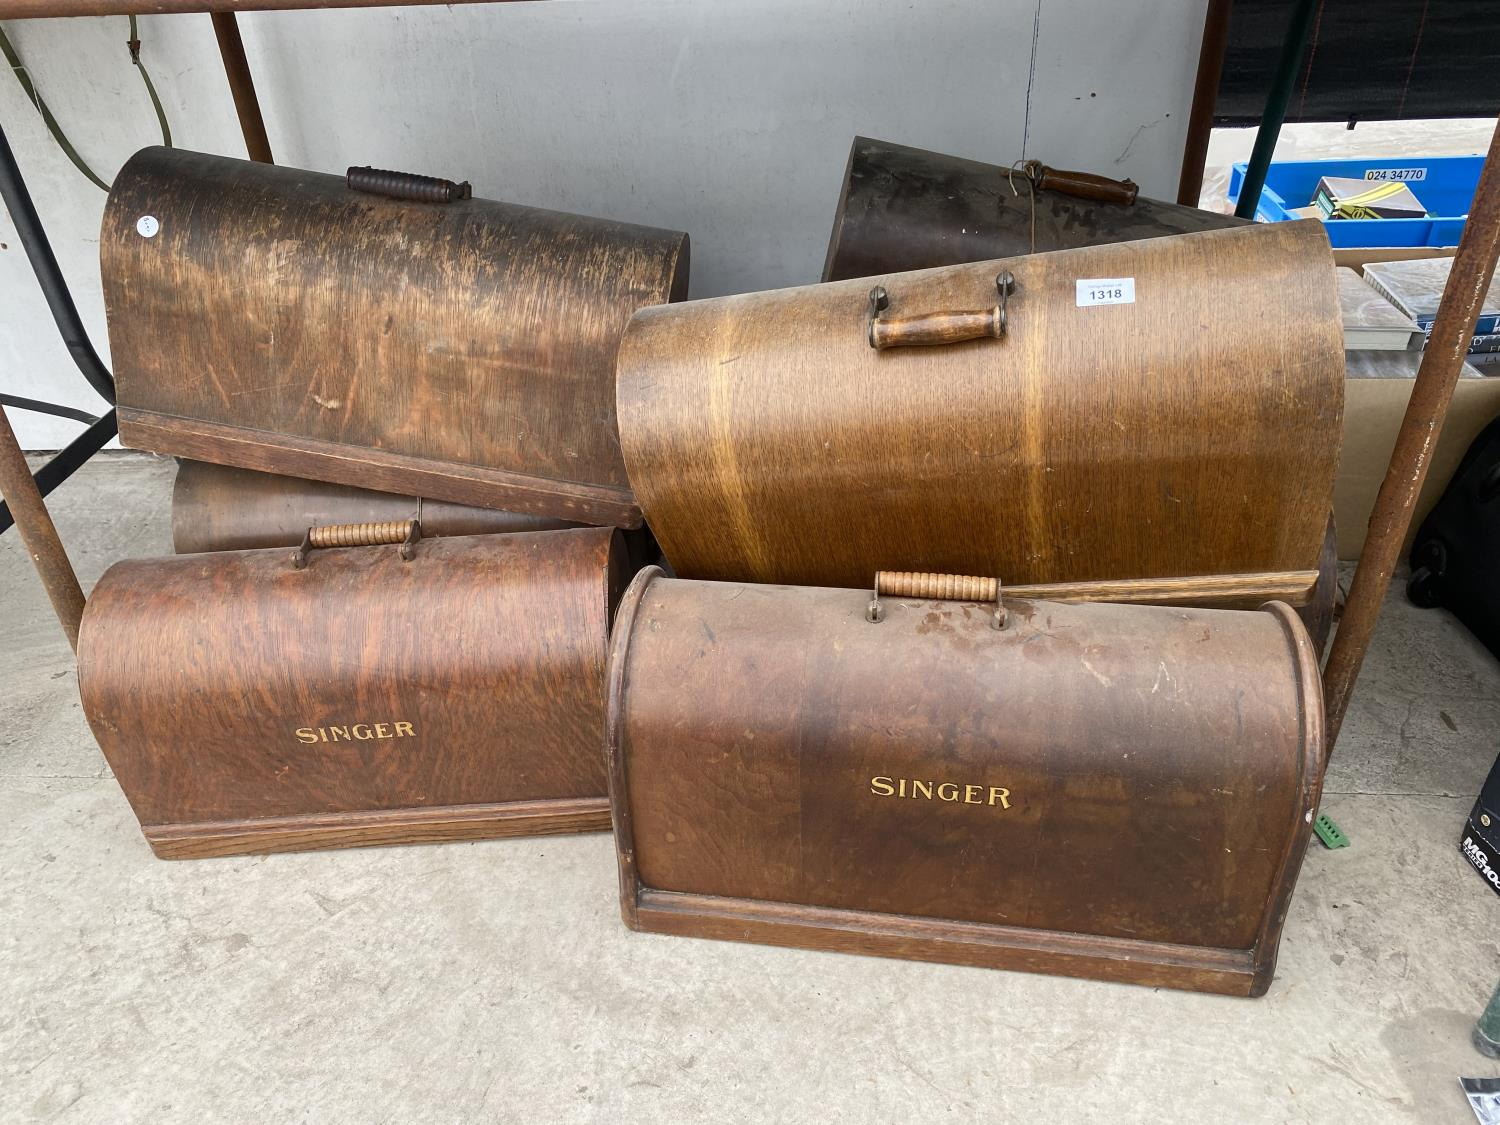 A LARGE QUANTITY OF SINGER SEWING MACHINE CASES